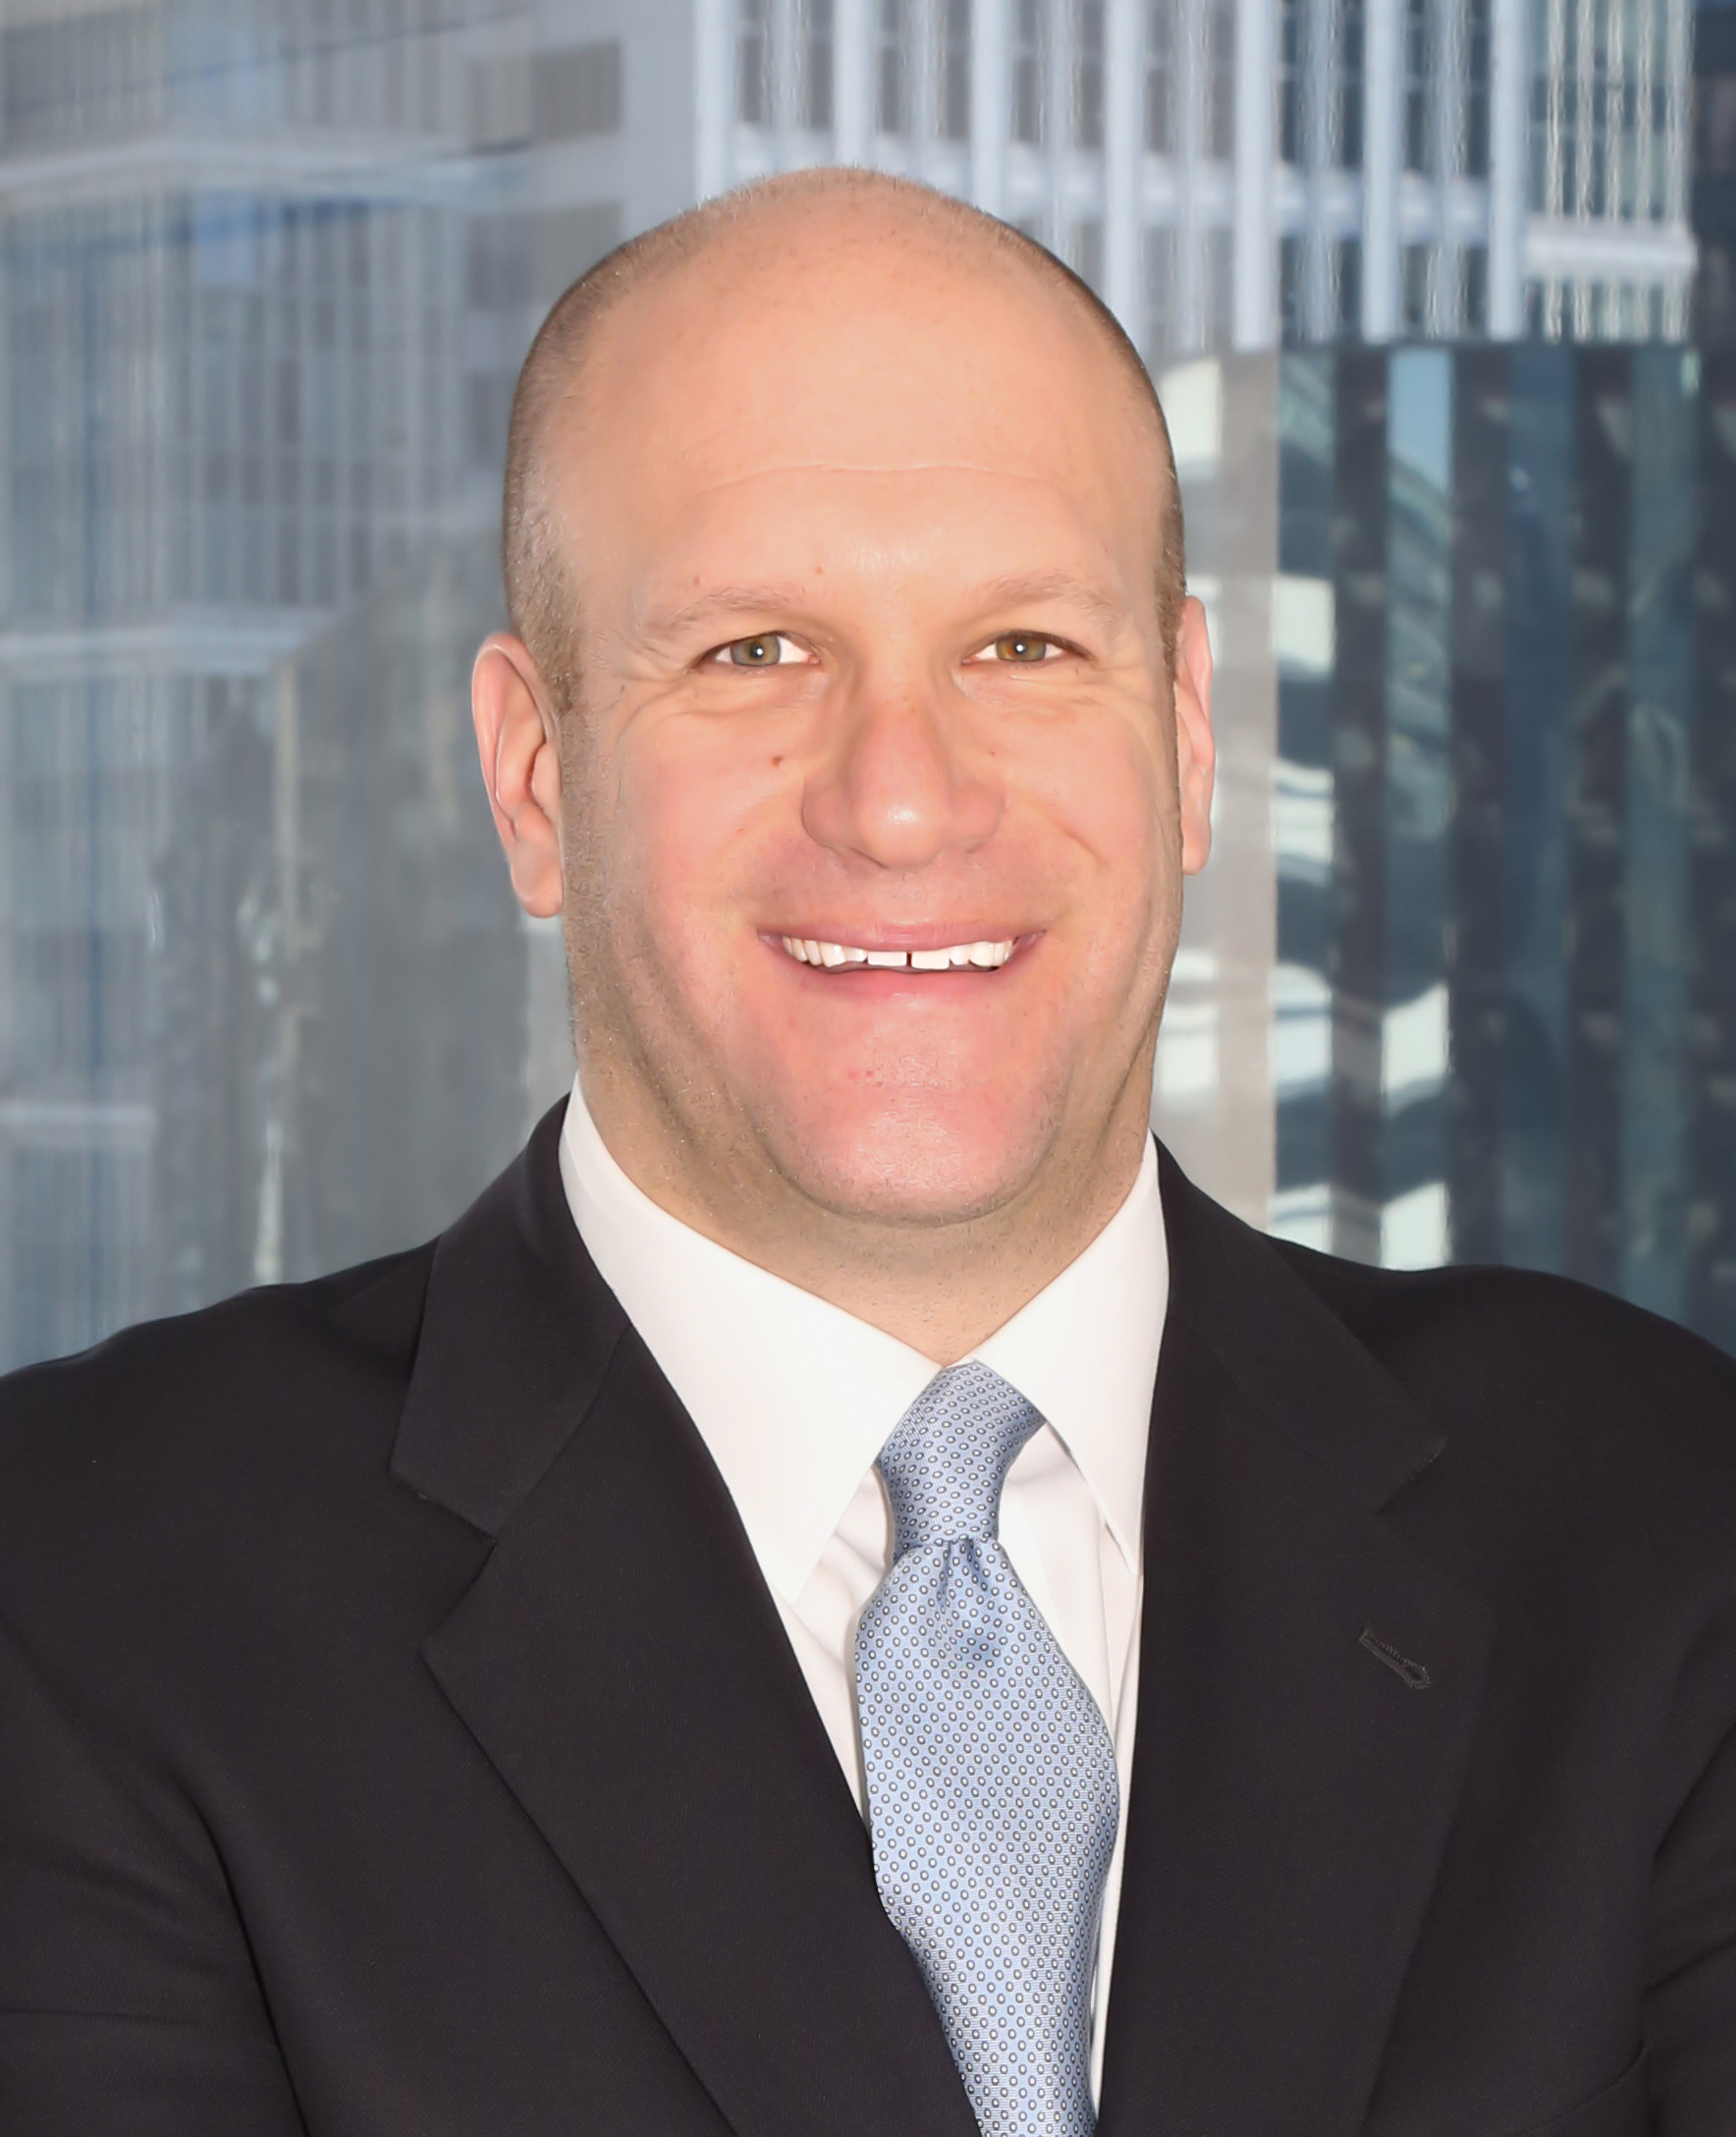 Tom Gimbel, CEO of the LaSalle Network